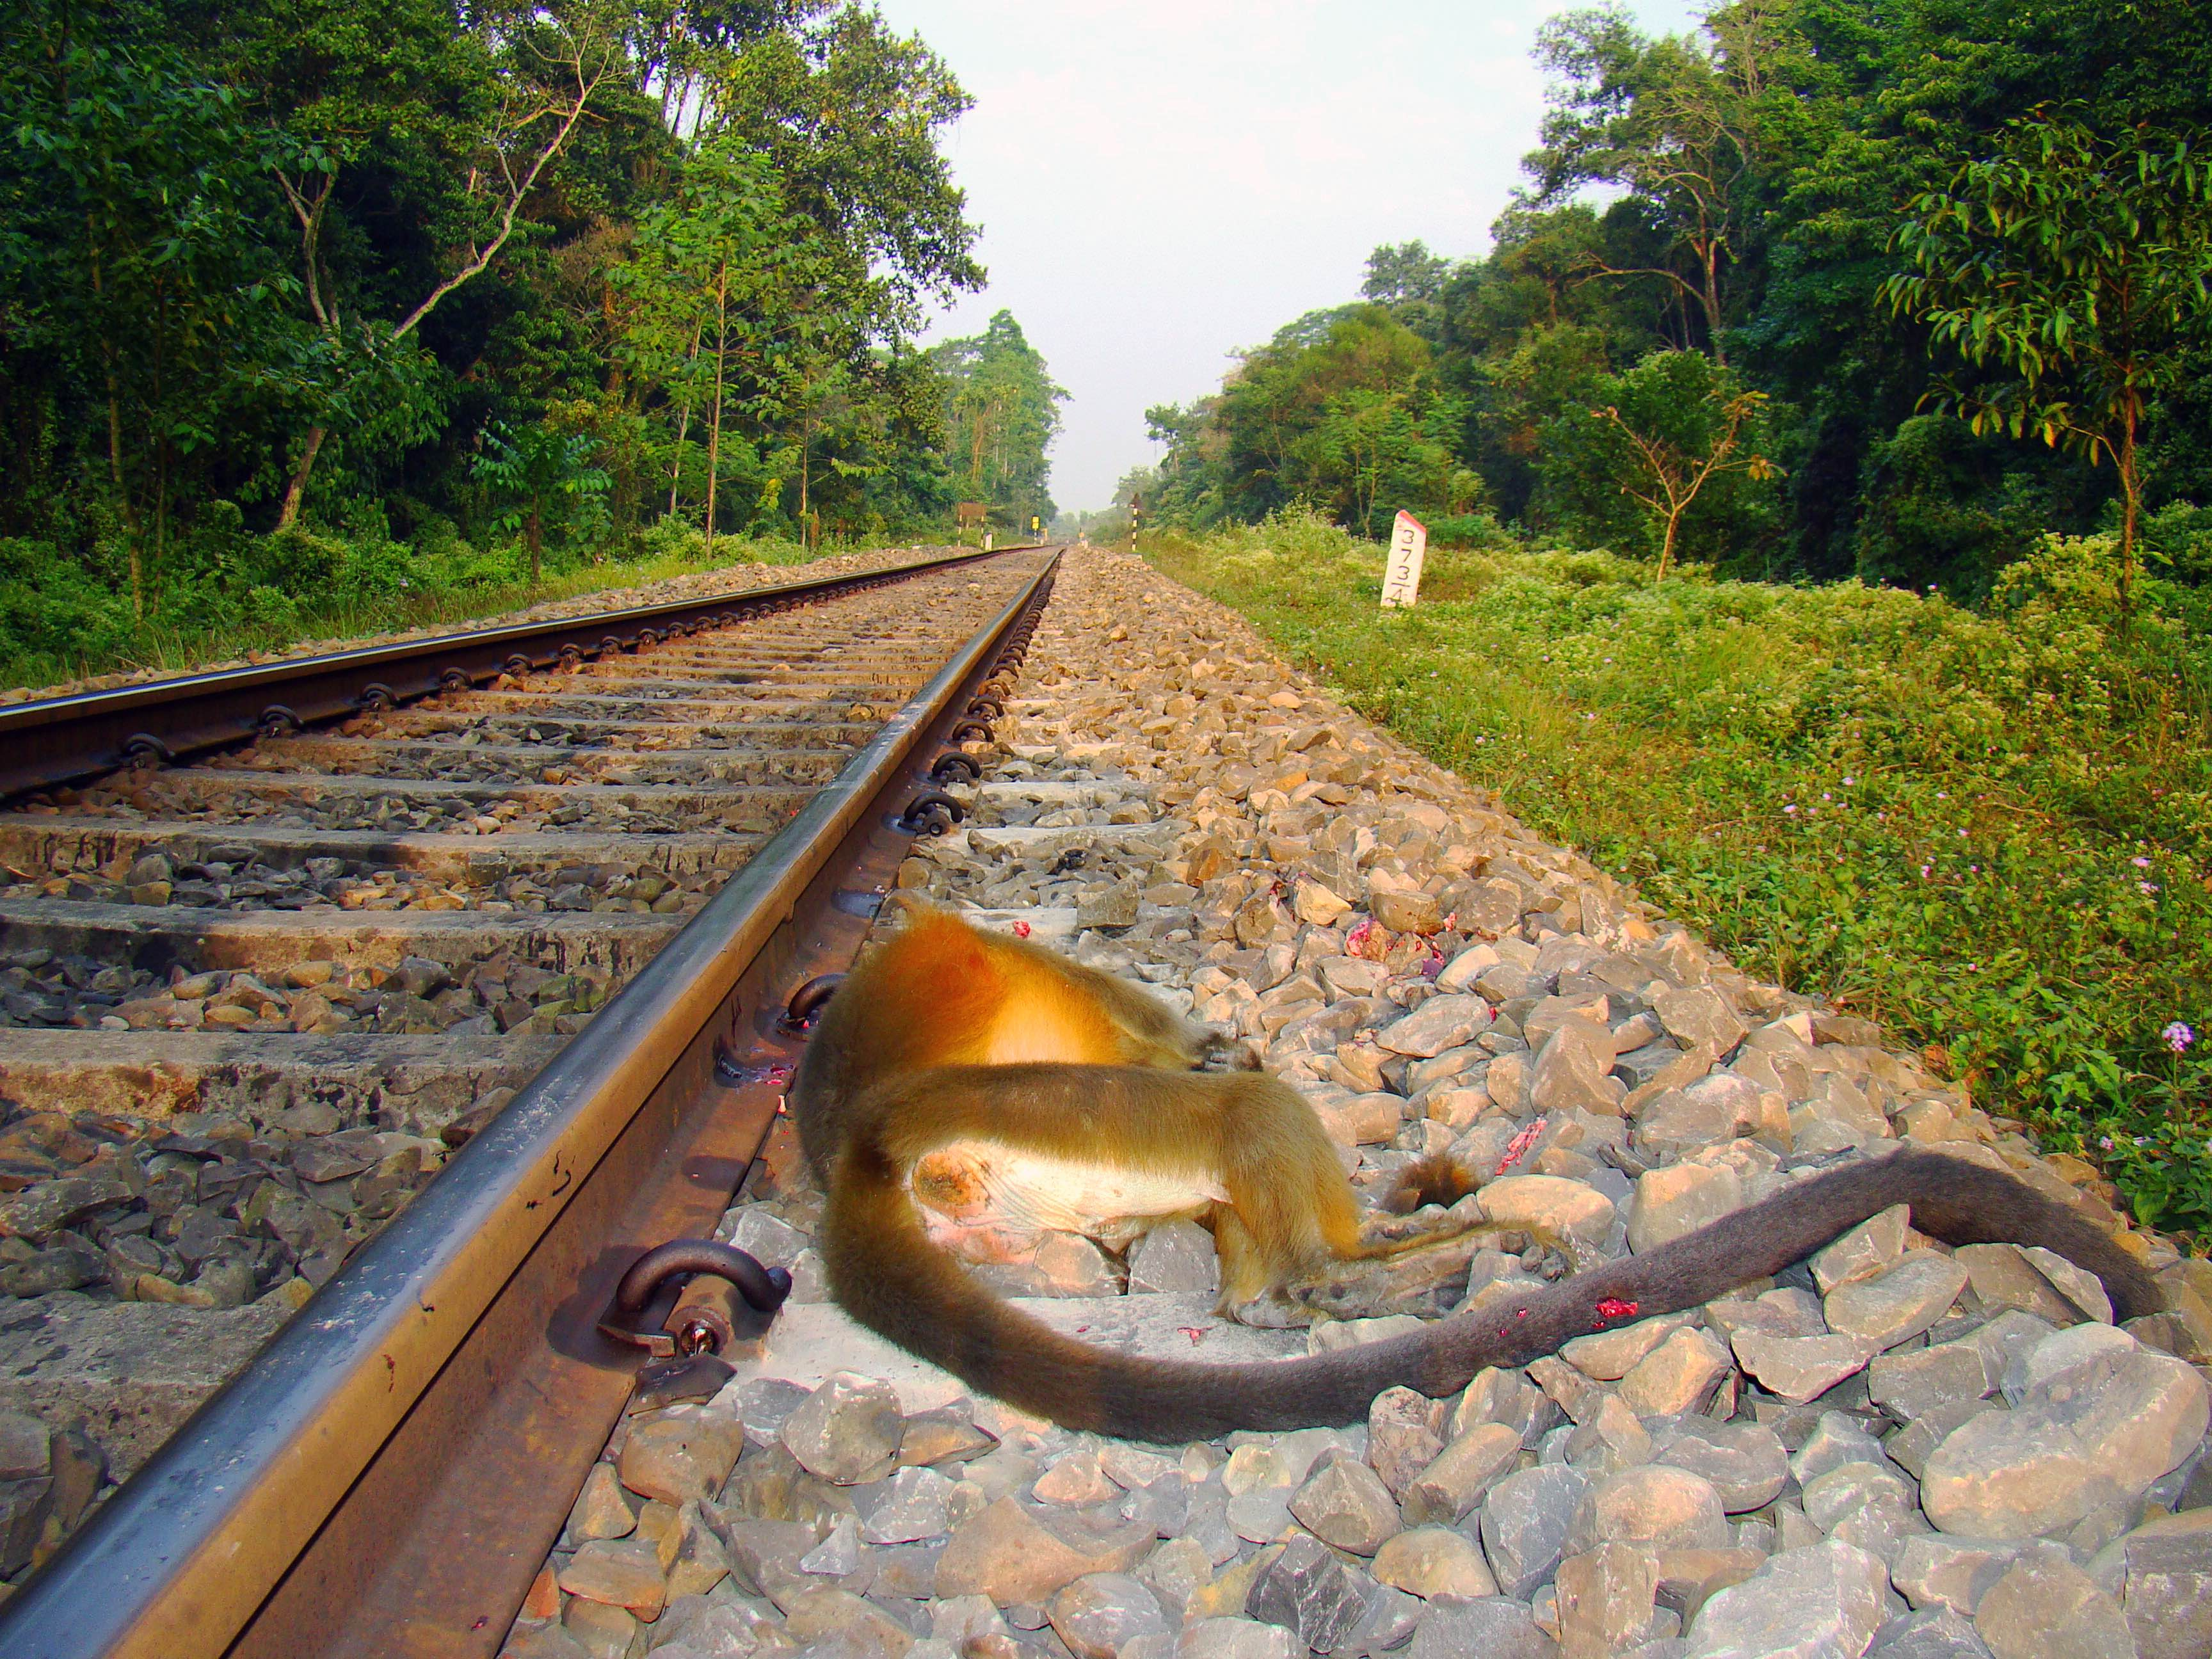 A century-old railway line, which connects some of Assam's major towns, slices through Hollongapar Gibbon Sanctuary. Capped langurs trying to cross the line often fall victim to a speeding train.  Photo: Narayan Sharma